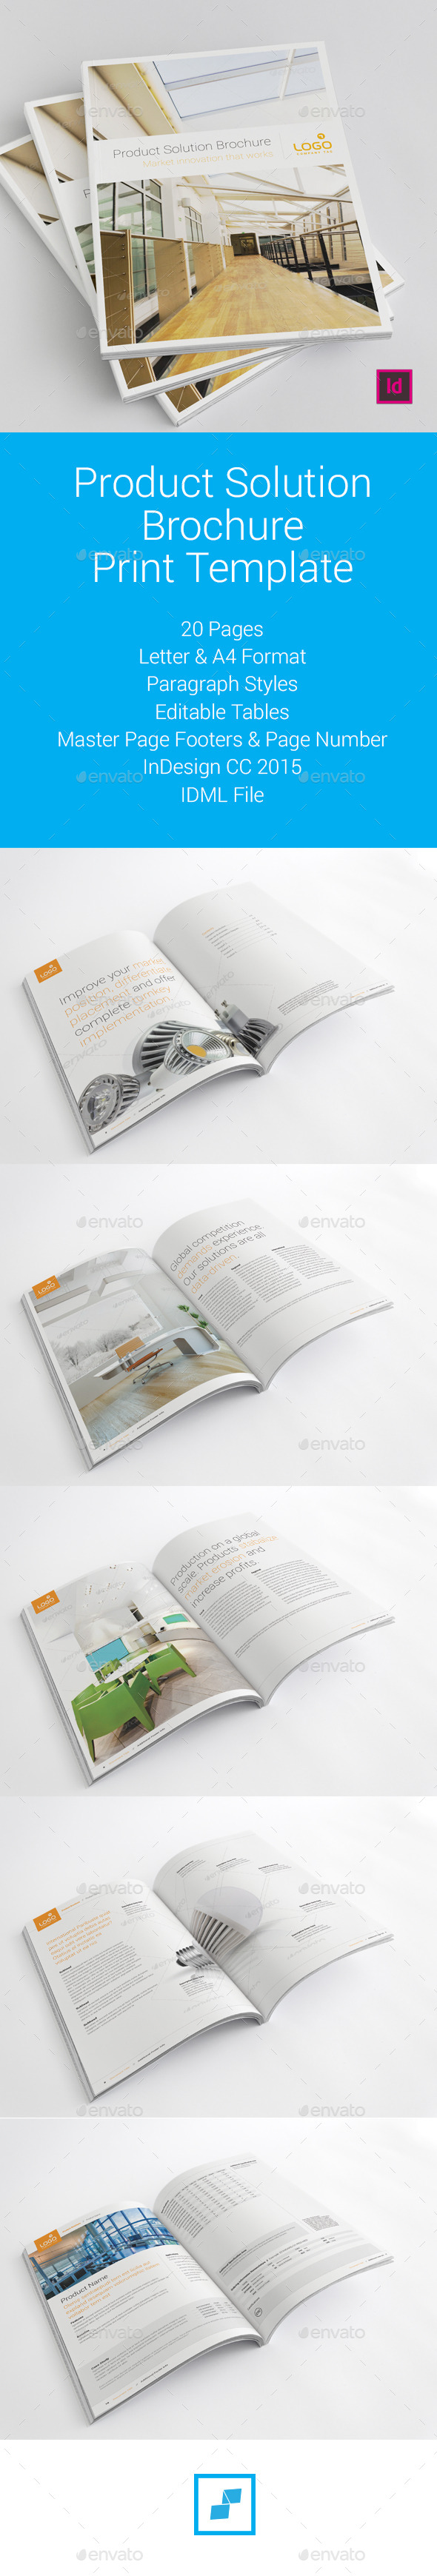 Product Solutions Brochure - Corporate Brochures